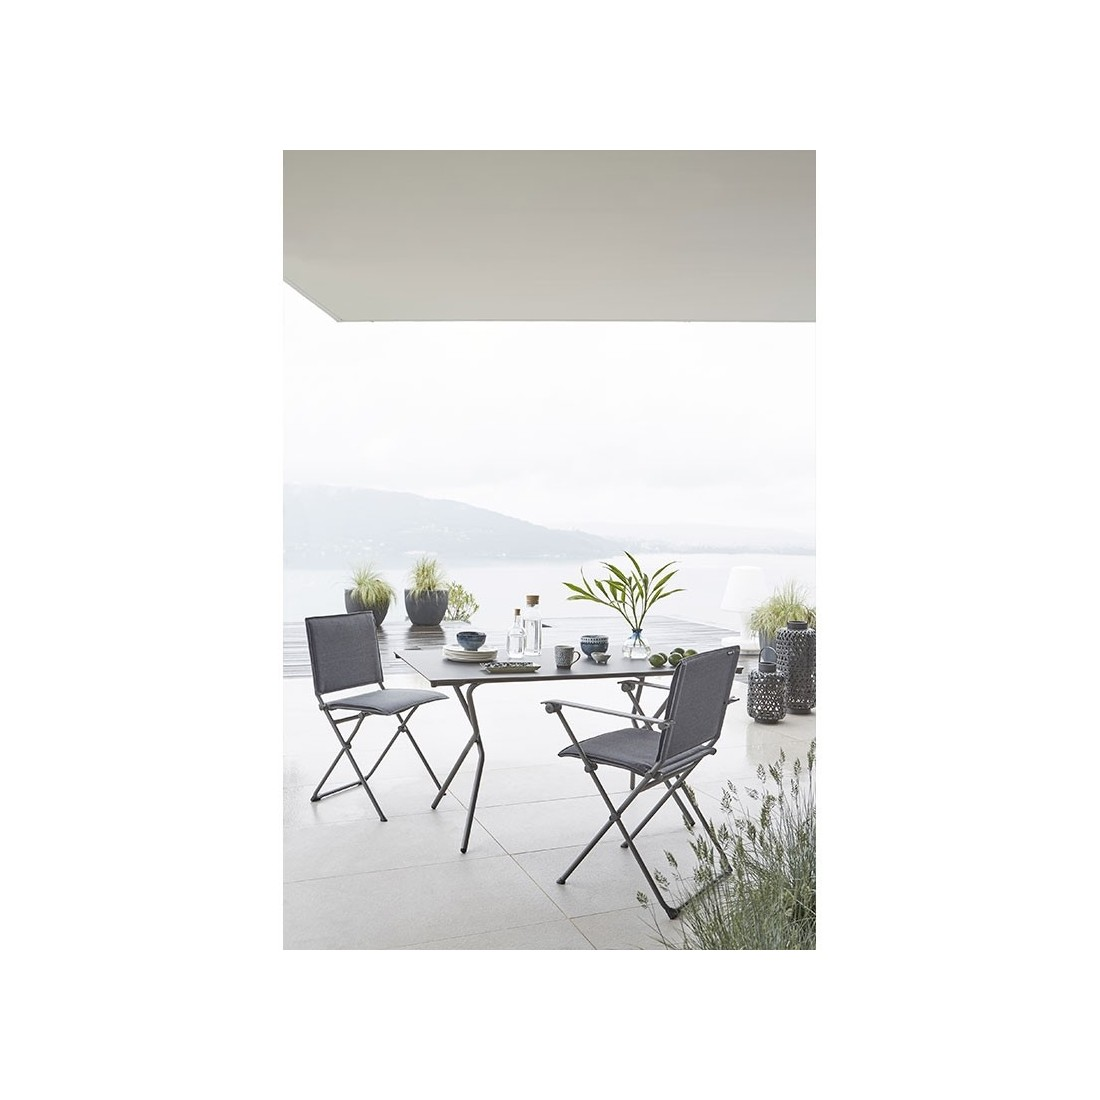 Table rectangulaire pliante ANYTIME de Lafuma, ambiance cocooning et ...